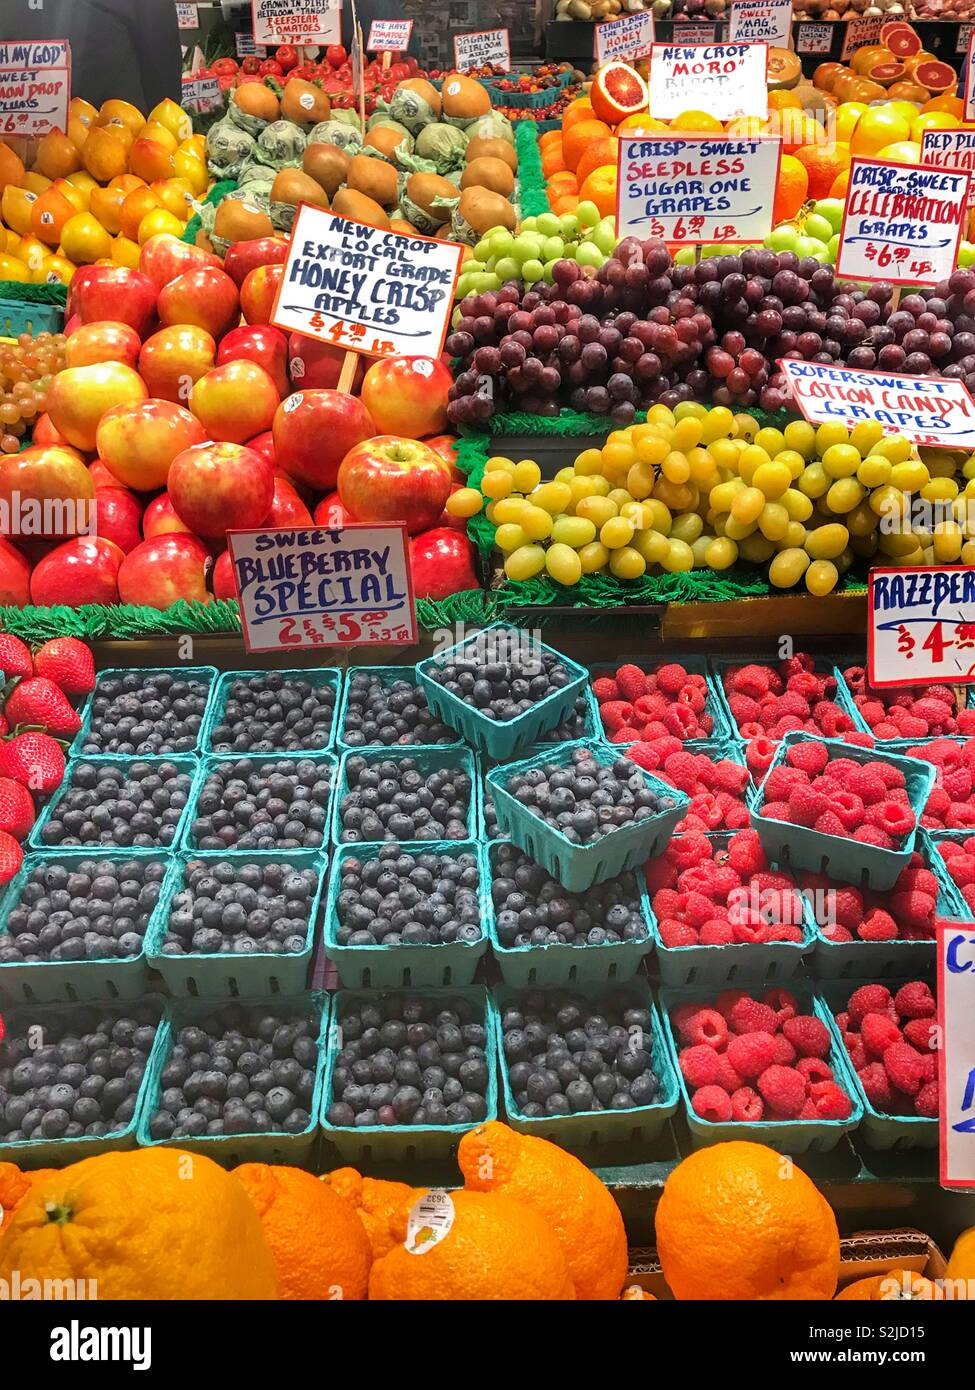 Fruits and vegetable at pikes market in Seattle Washington Stock Photo